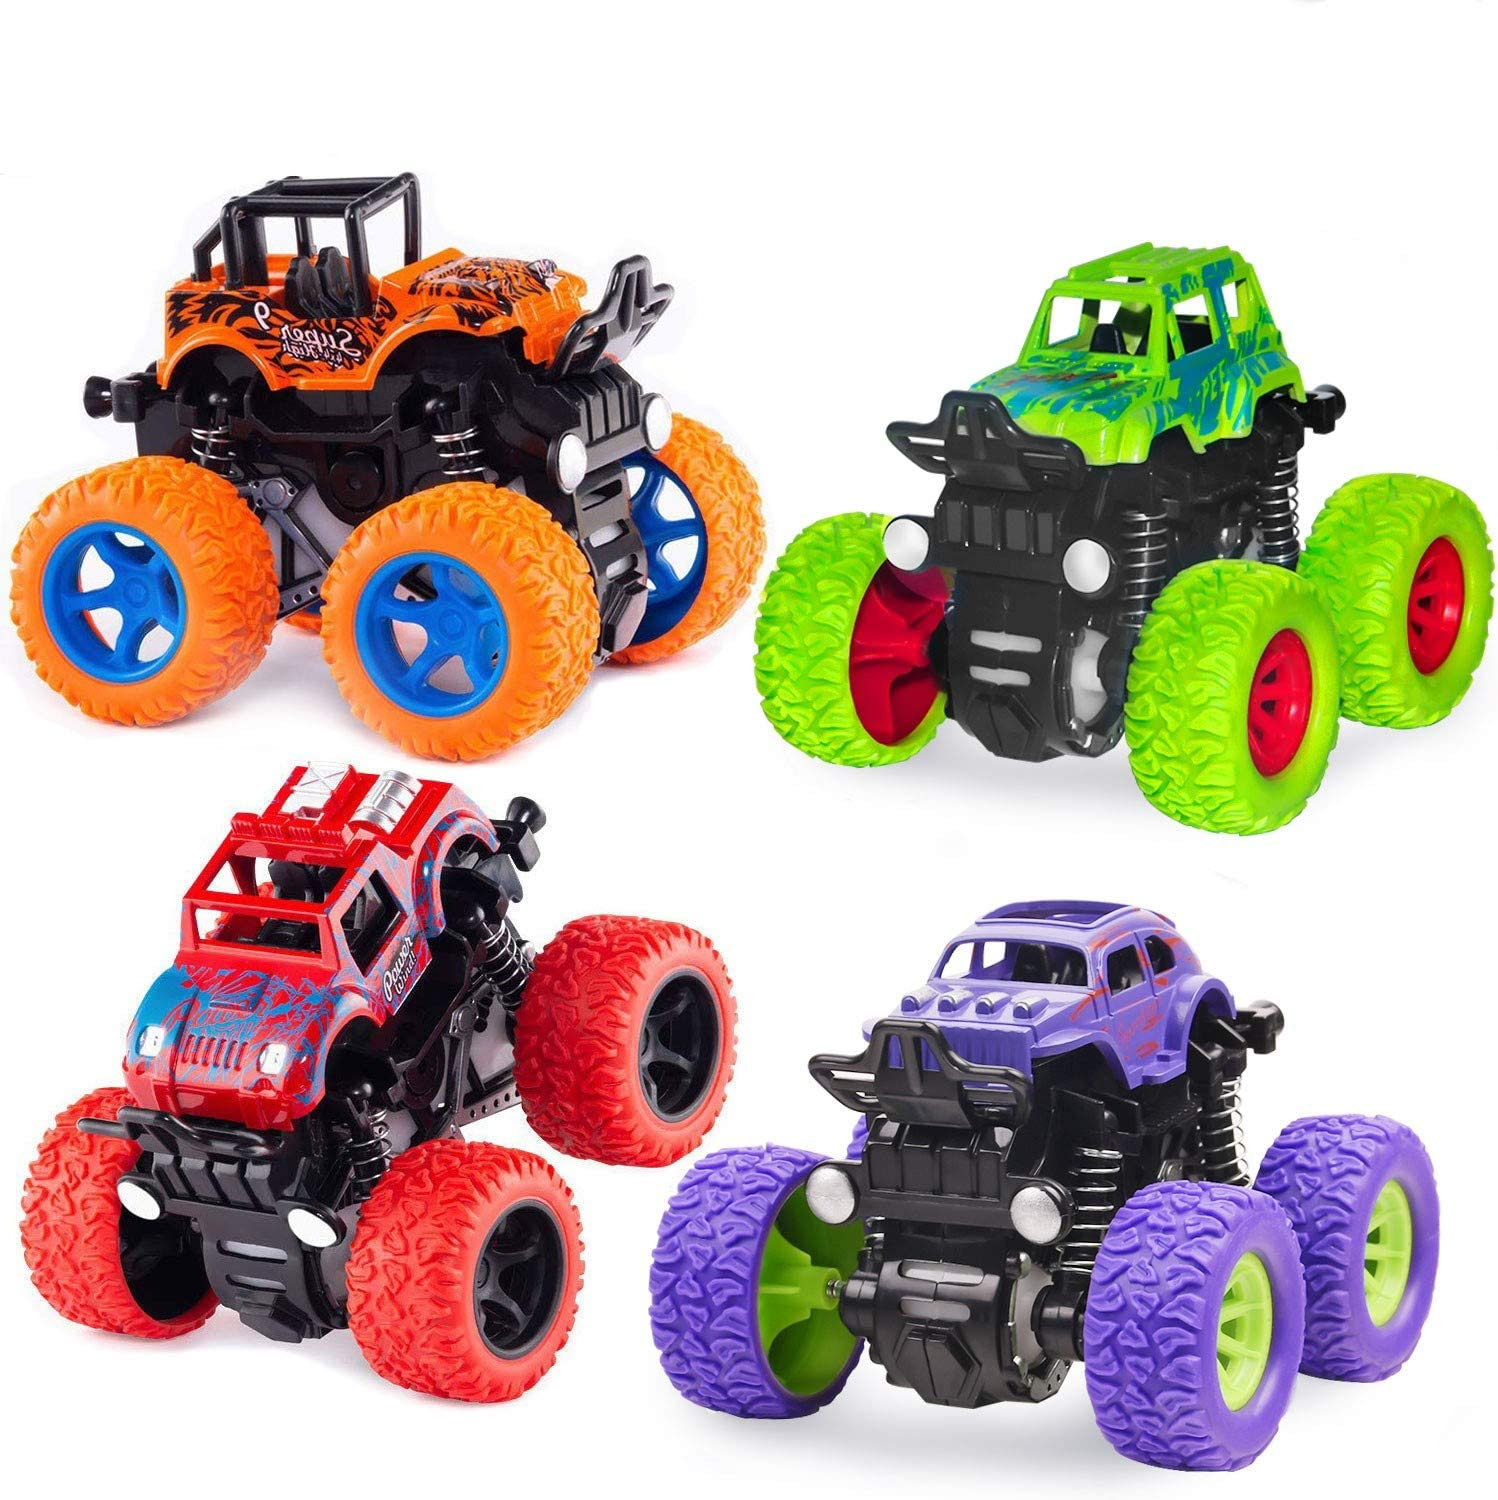 Amazon Com Monster Truck Toys Friction Powered Toy Cars Push And Go Vehicles For Kids Best Christmas Birthday Party Gift For Boys Girls Aged 3 And Above 4 Pack Toys Games